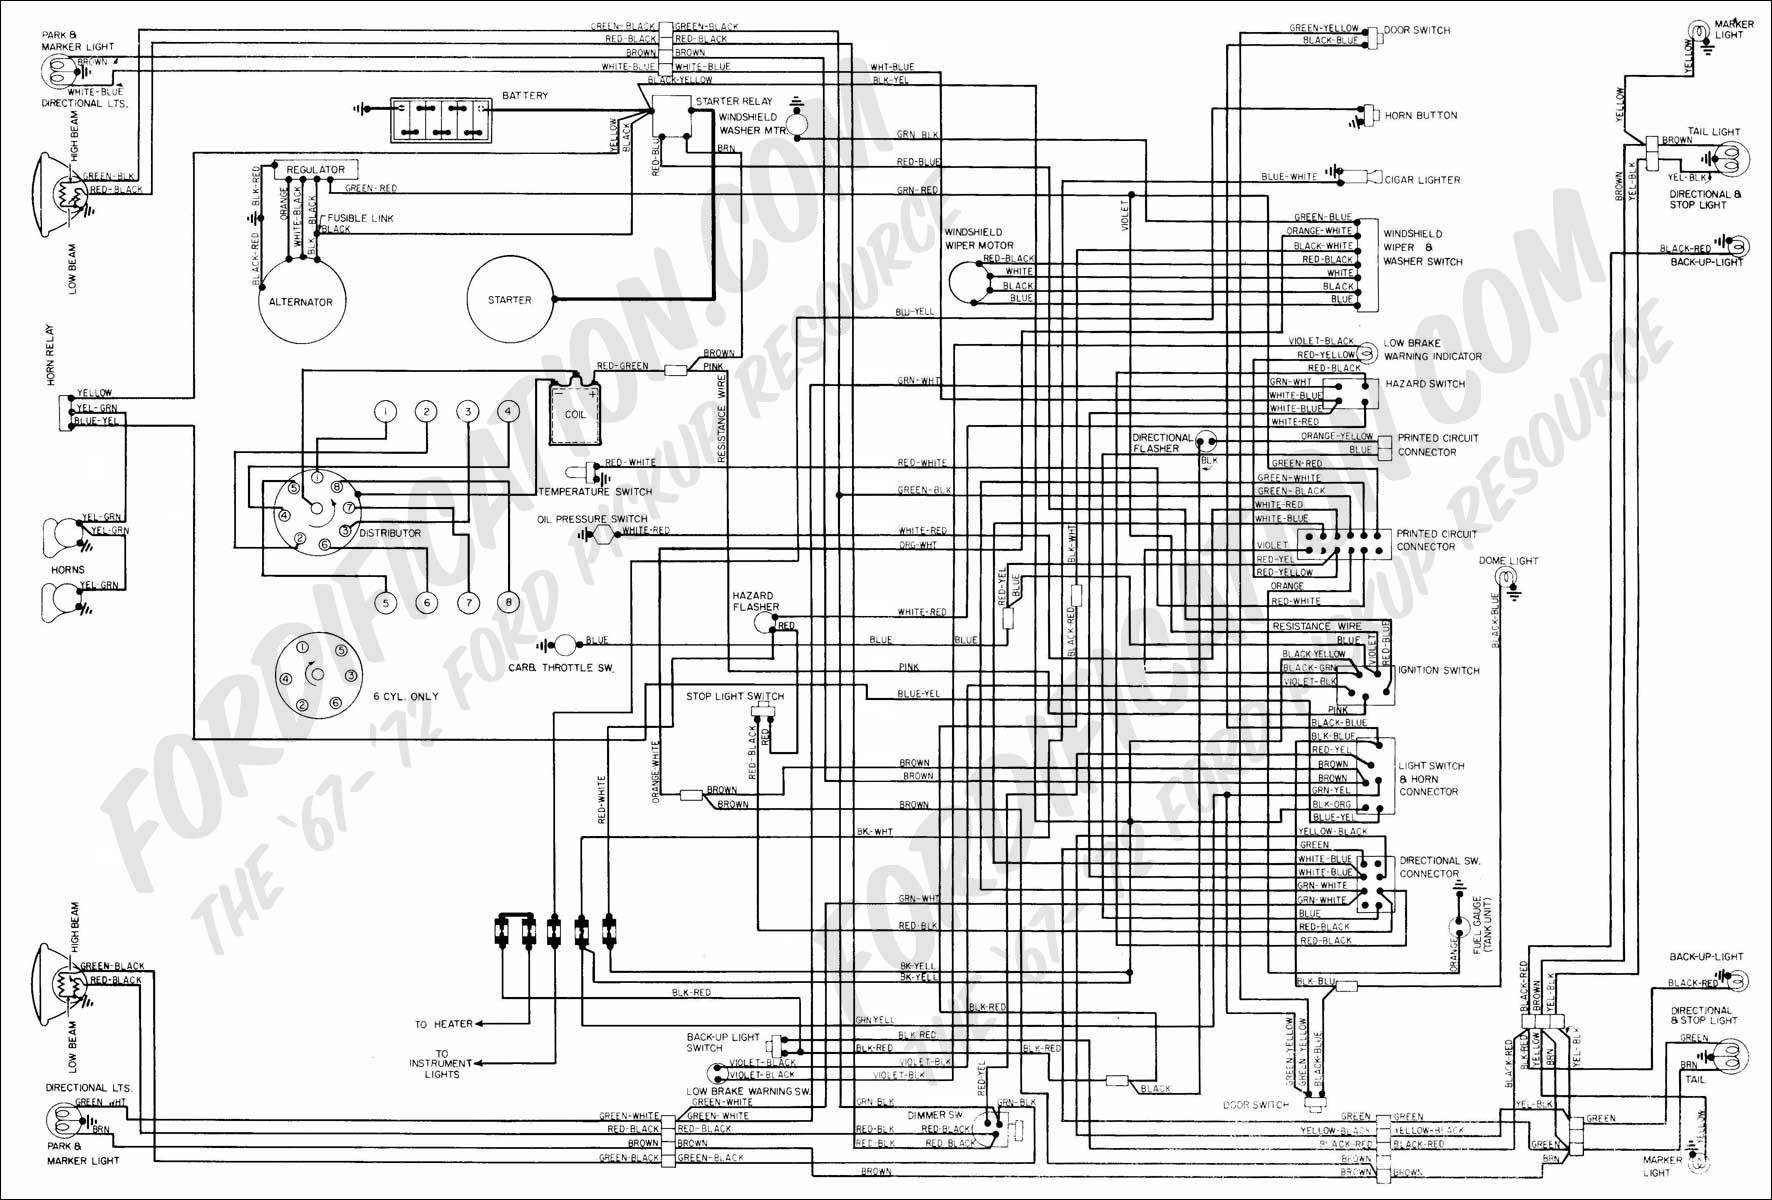 1970 Torino Ignition Switch Diagram Wiring Libraries Ford Falcon Library1970 Product Diagrams